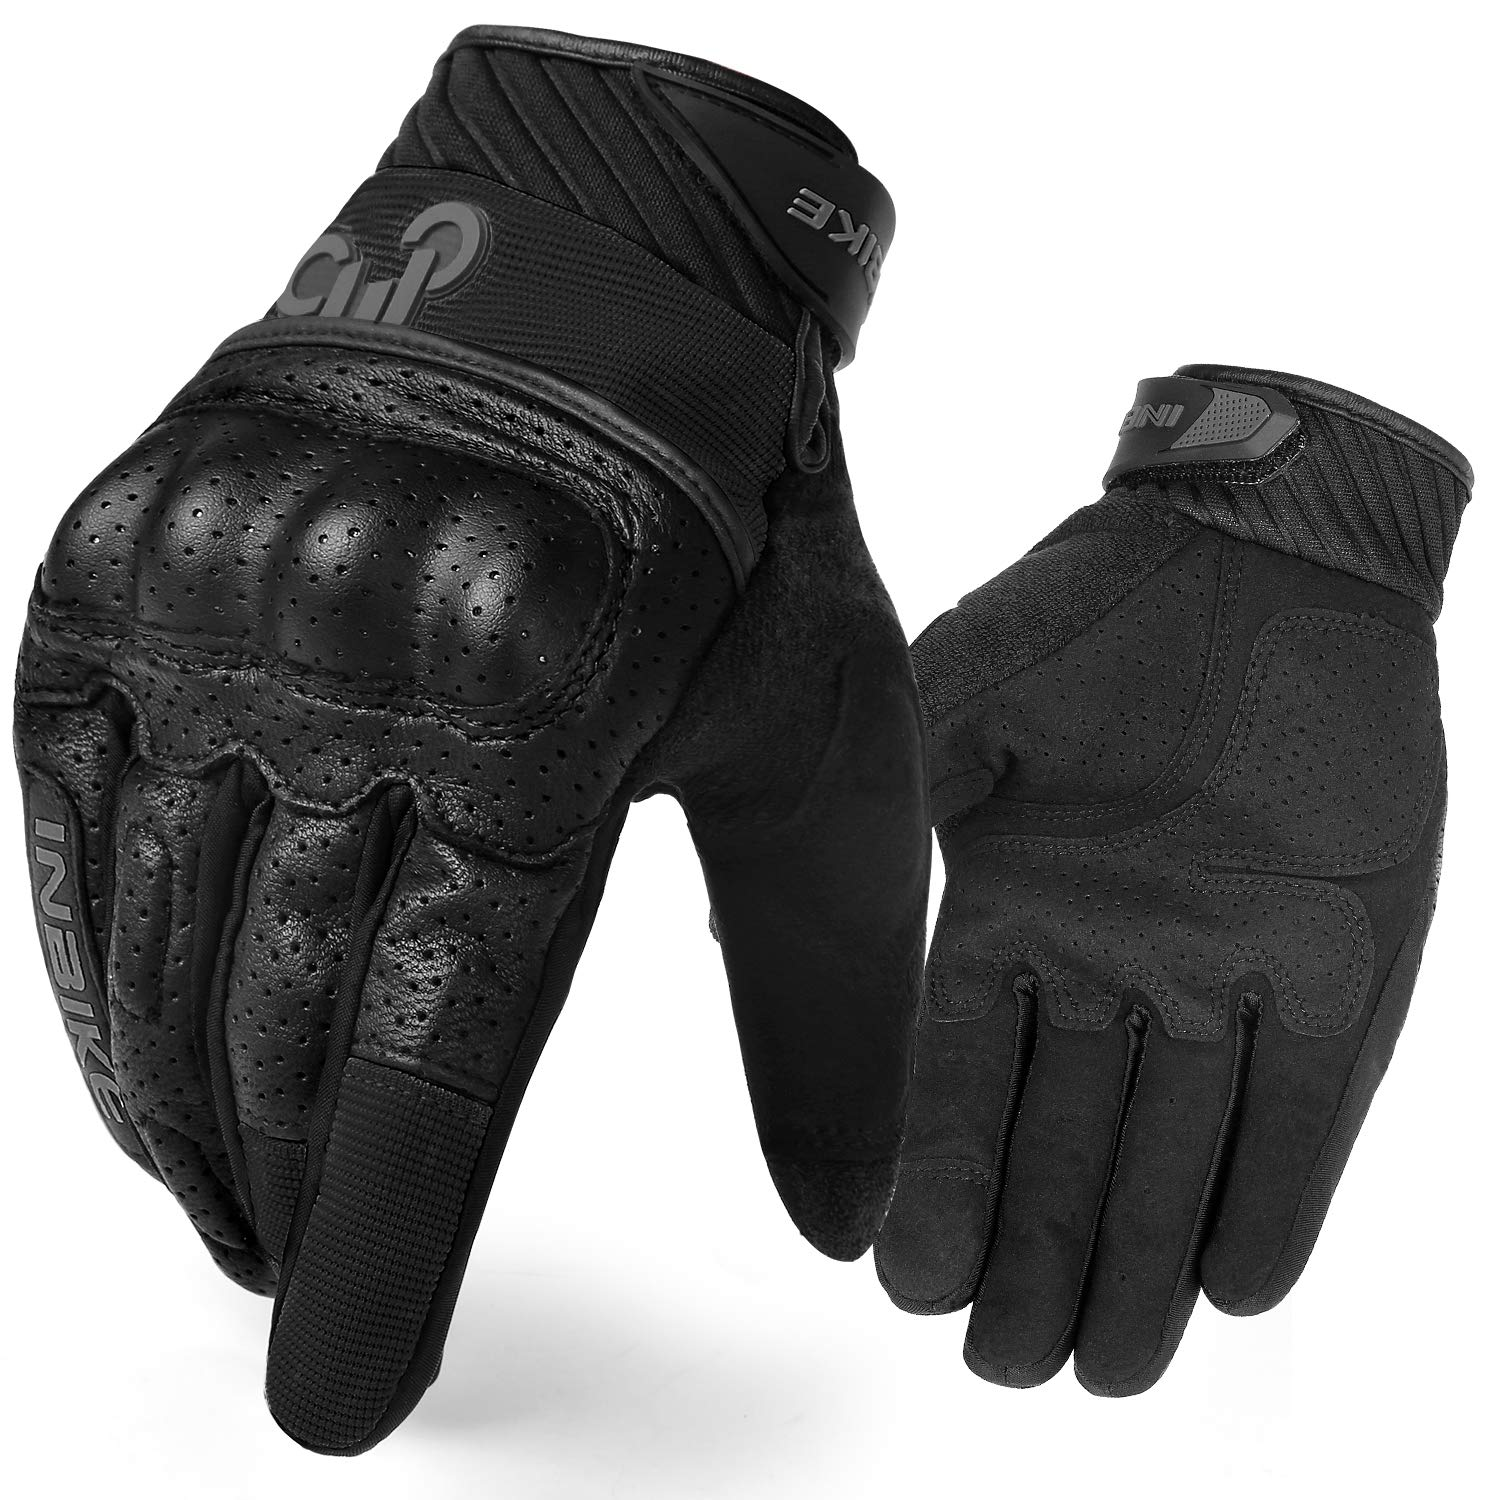 Inbike Best Motorcycle Gloves